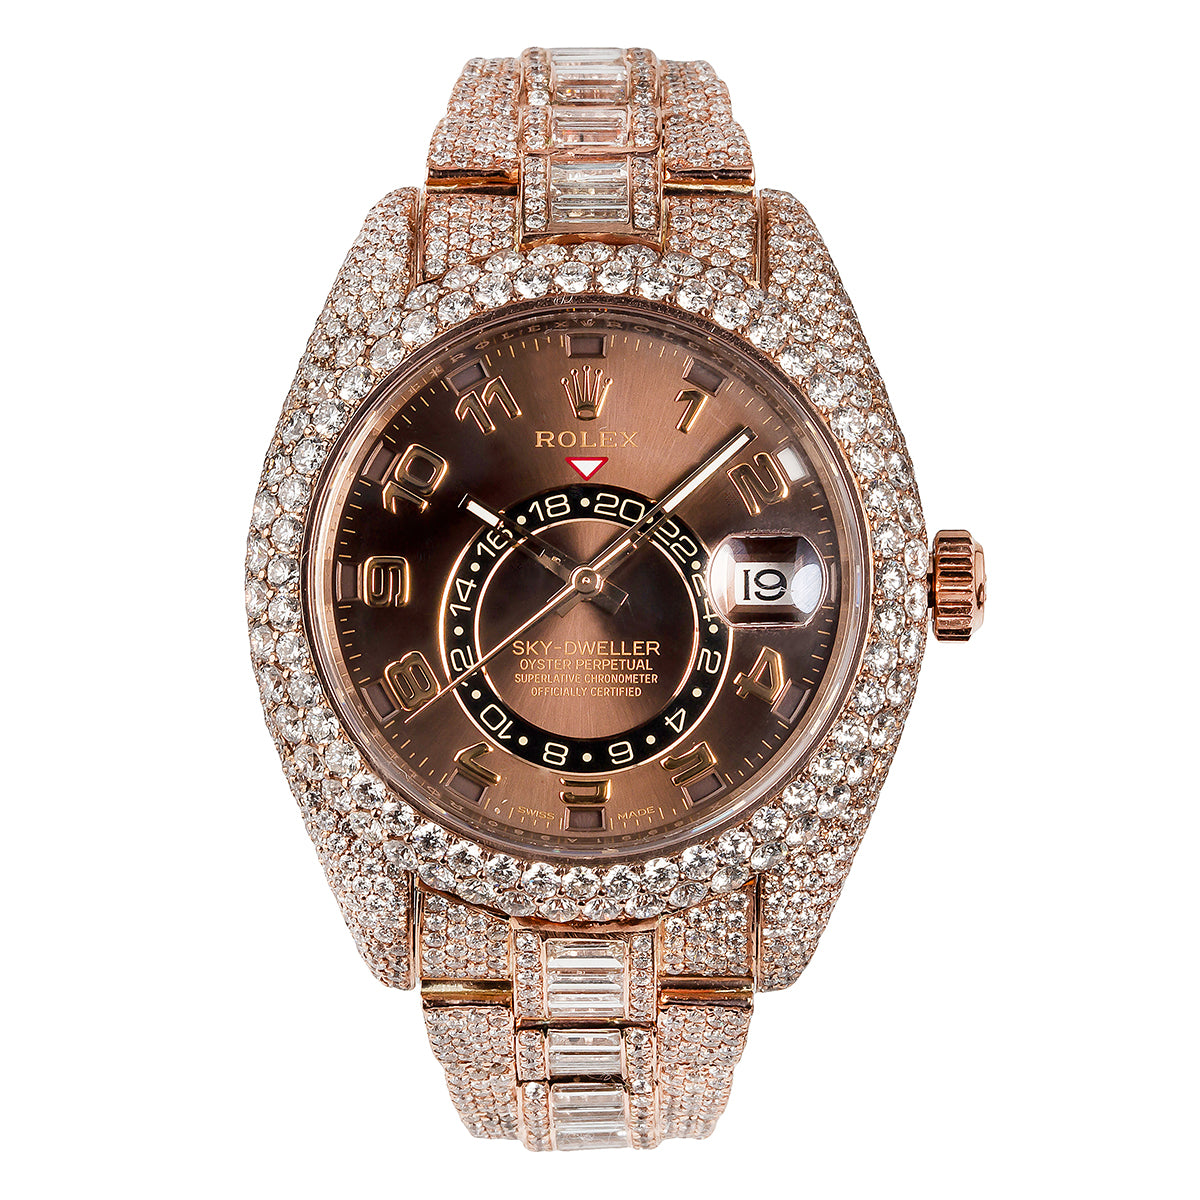 18K Rose Gold Rolex Diamond Watch, Sky-Dweller 326935 42mm, Brown Dial 28.75CT Diamonds